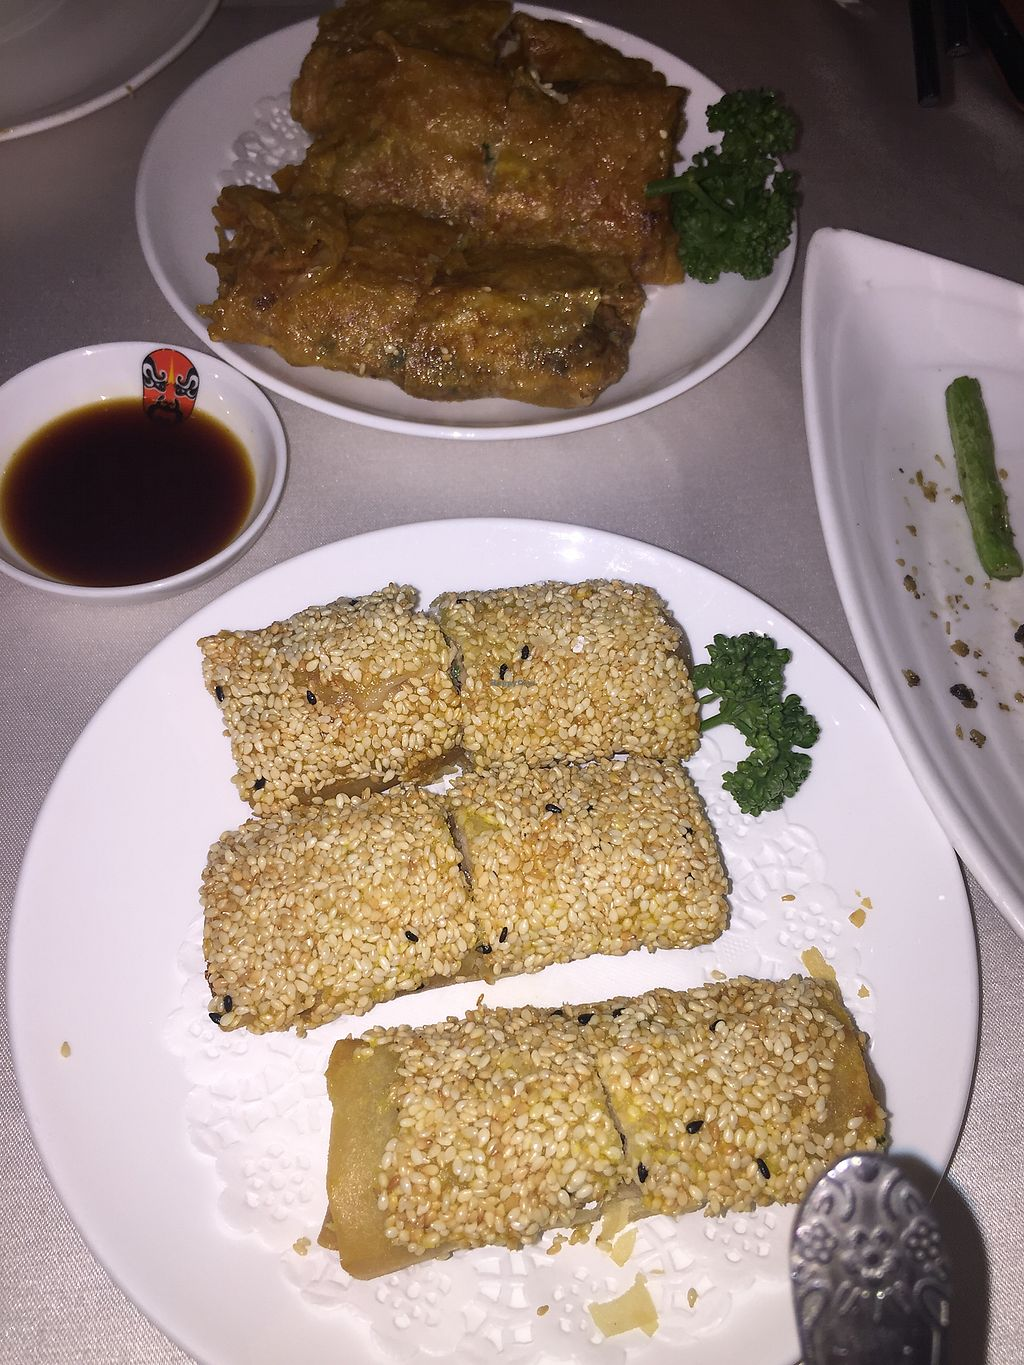 """Photo of Xin Hong Vegetable Cuisine  by <a href=""""/members/profile/Nat55"""">Nat55</a> <br/>Two spring roll varieties  <br/> April 24, 2018  - <a href='/contact/abuse/image/90581/390563'>Report</a>"""